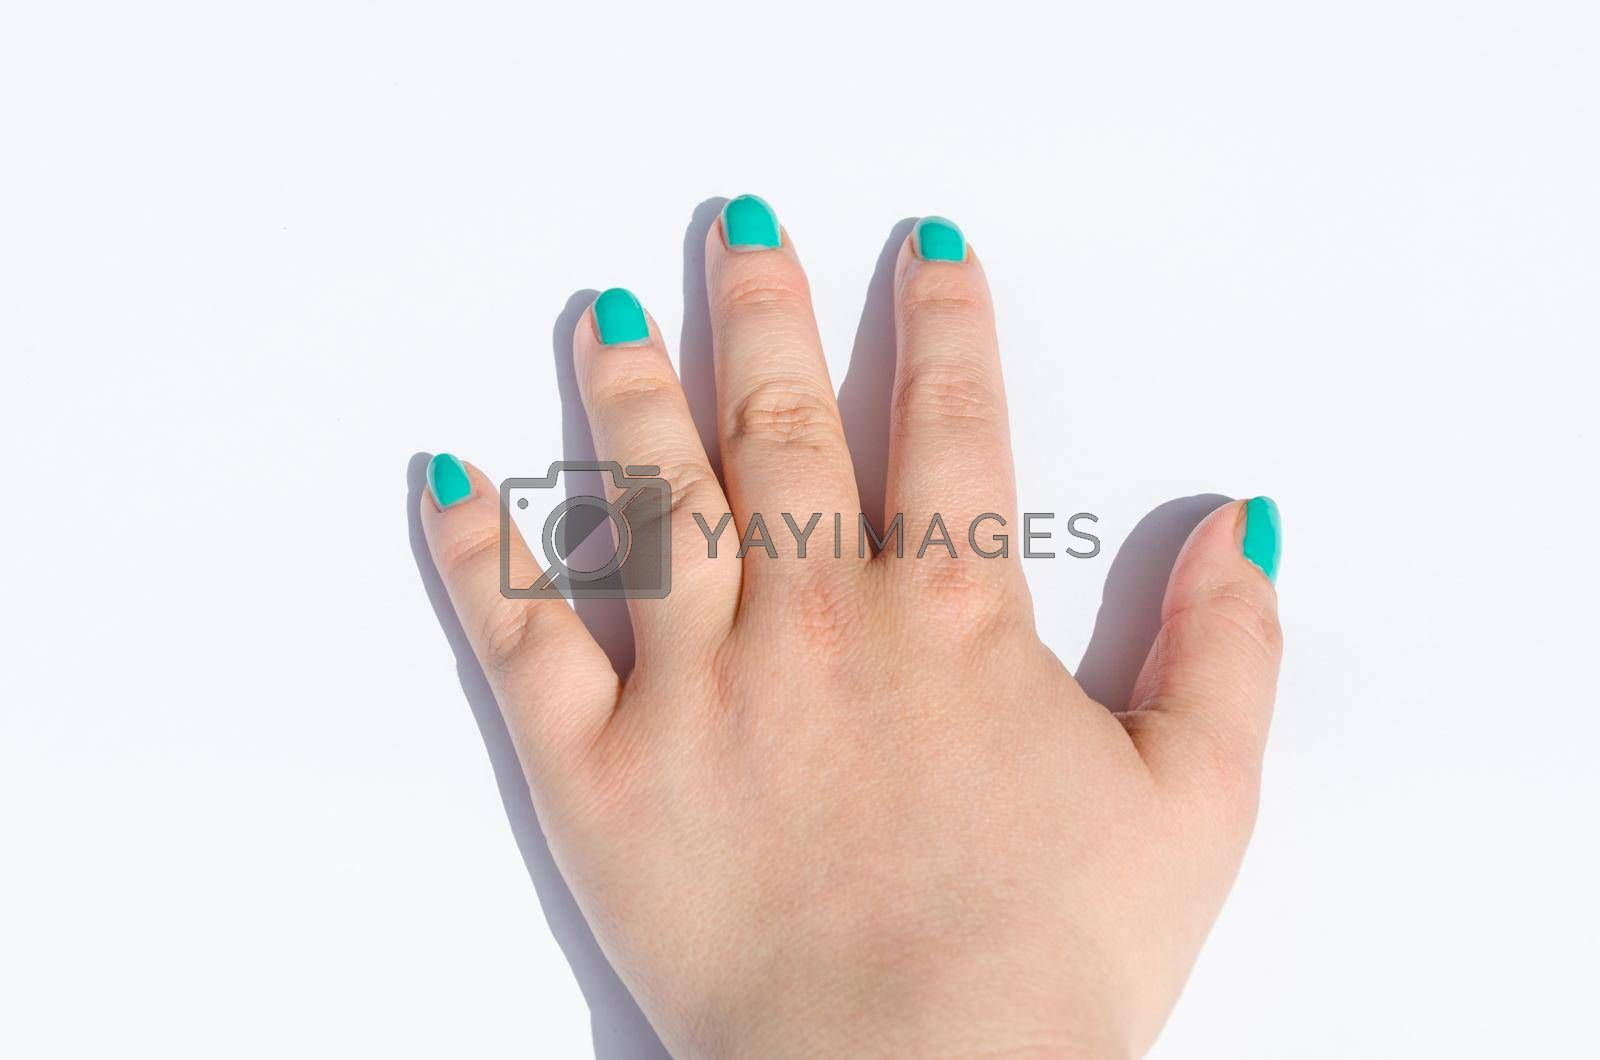 Royalty free image of Green manicure on short nails by JFsPic